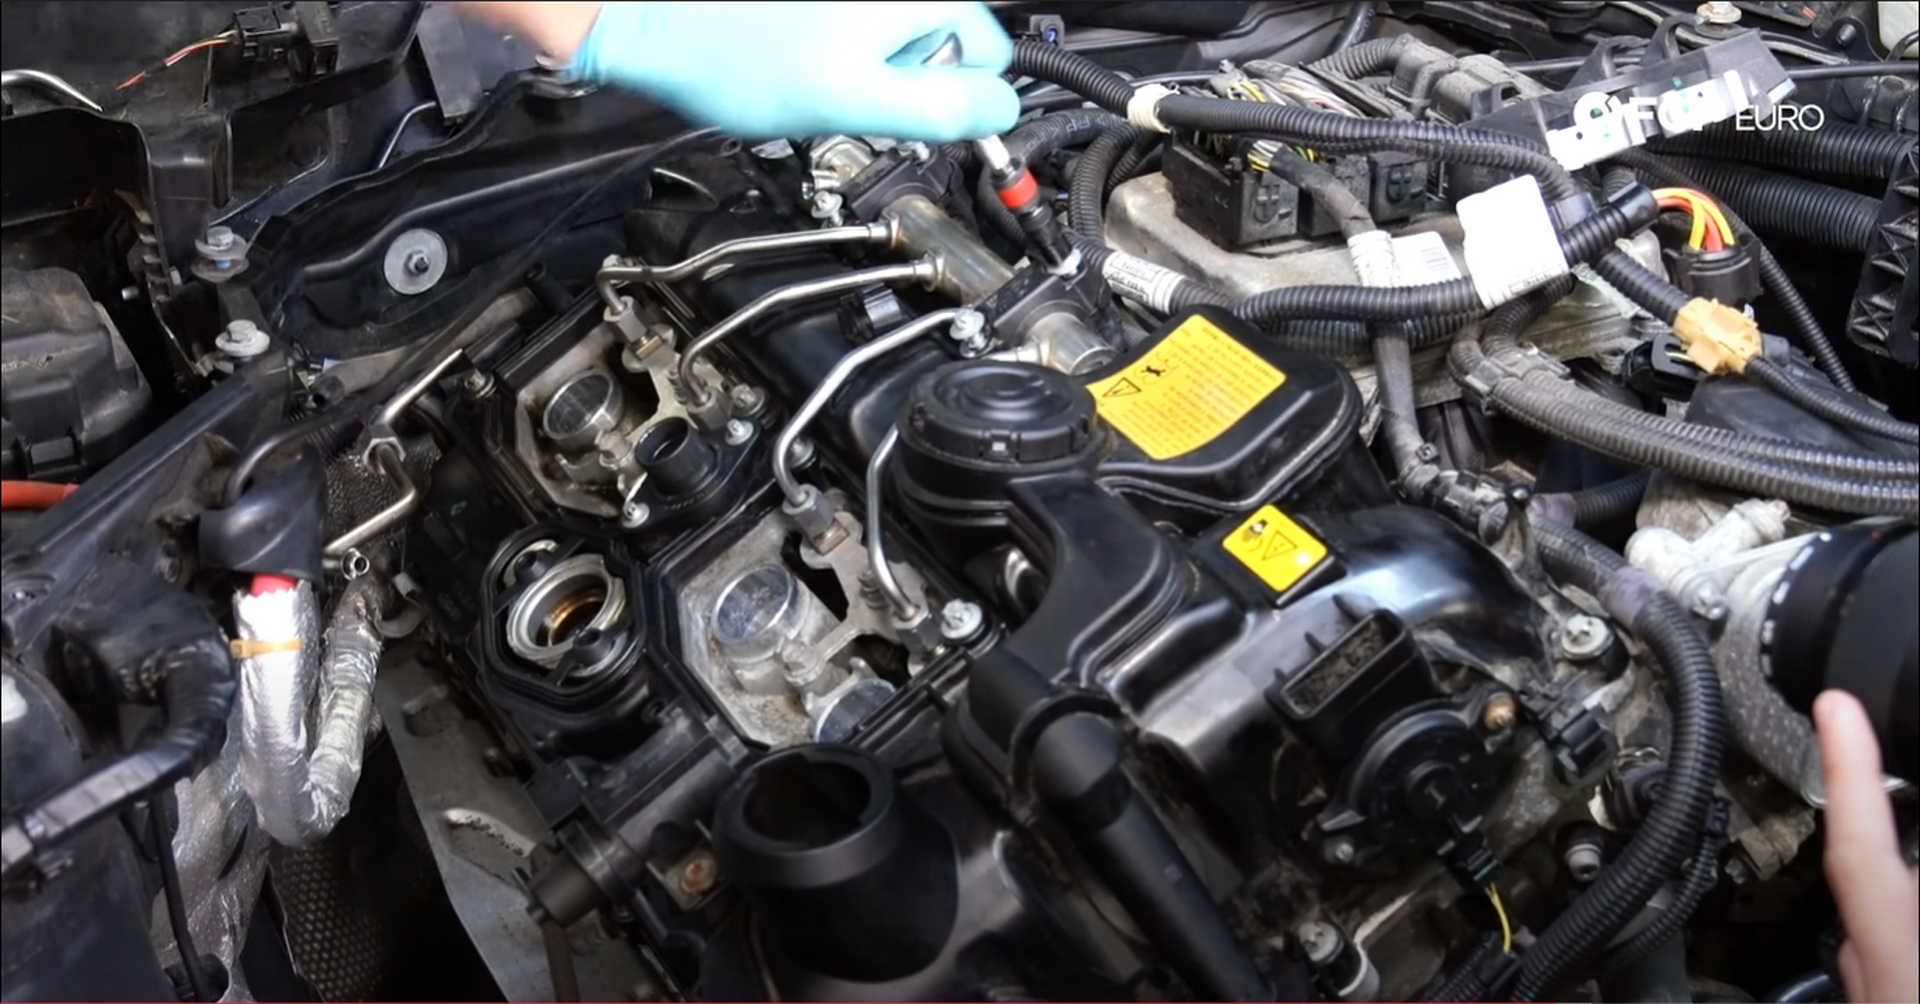 DIY BMW N20 Timing Chain tightening the fuel rail clamps